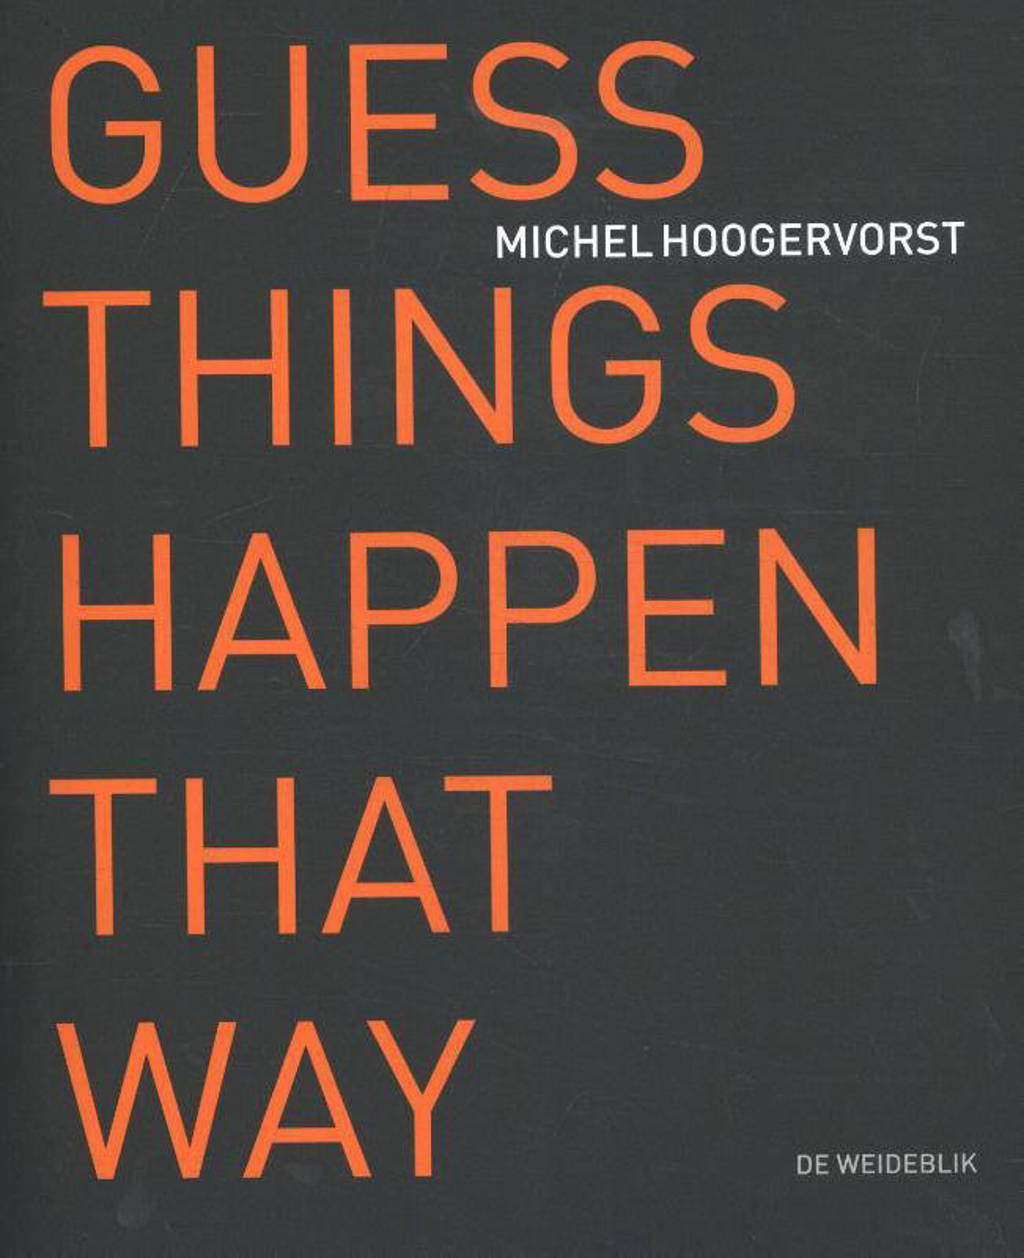 Guess things happen that way - Michel Hoogervorst en Gijsbert Dijker